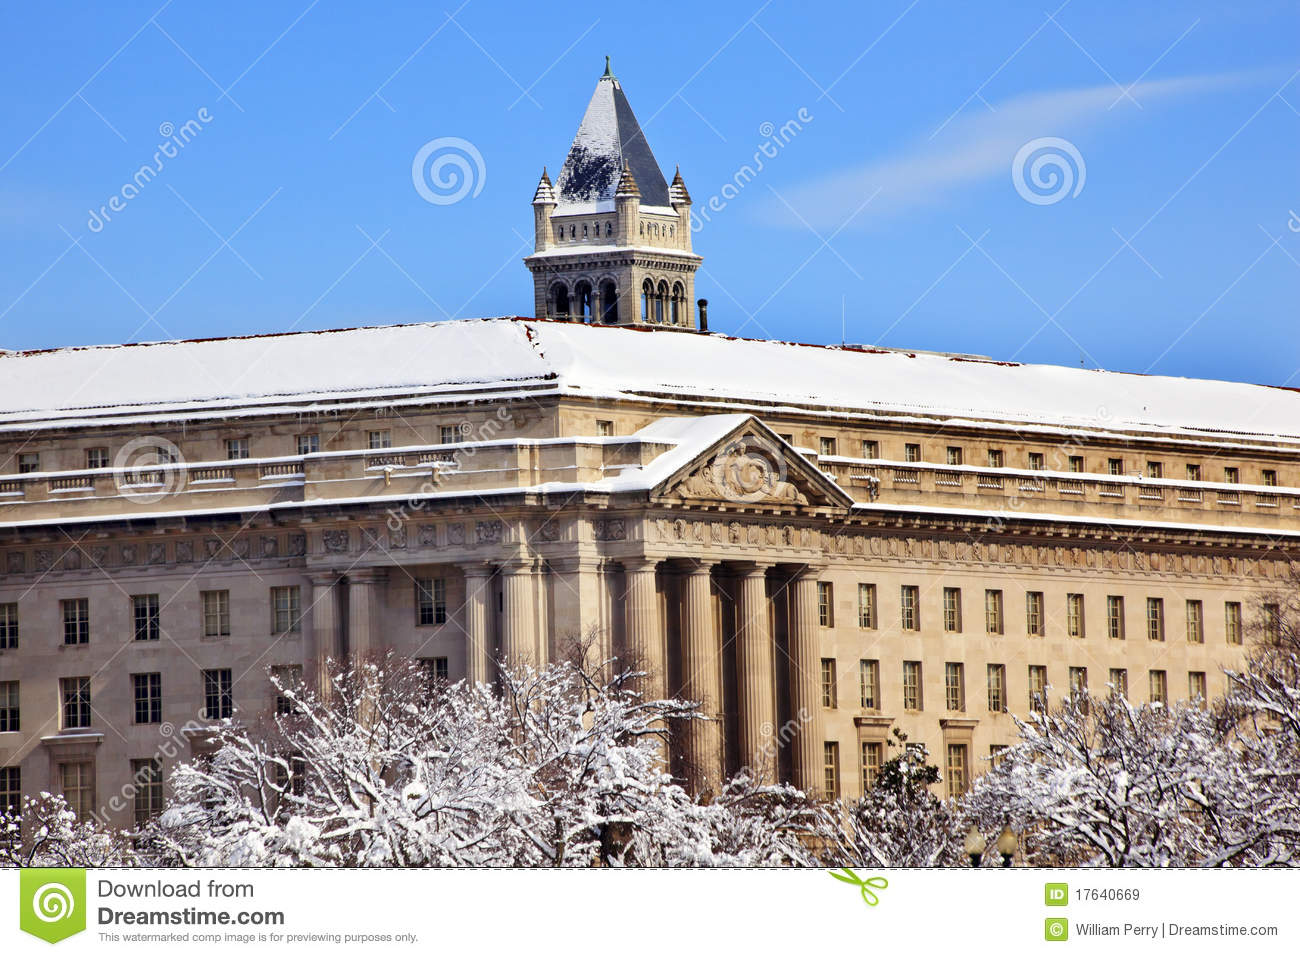 commerce department old post office after snow royalty free stock images image 17640669. Black Bedroom Furniture Sets. Home Design Ideas